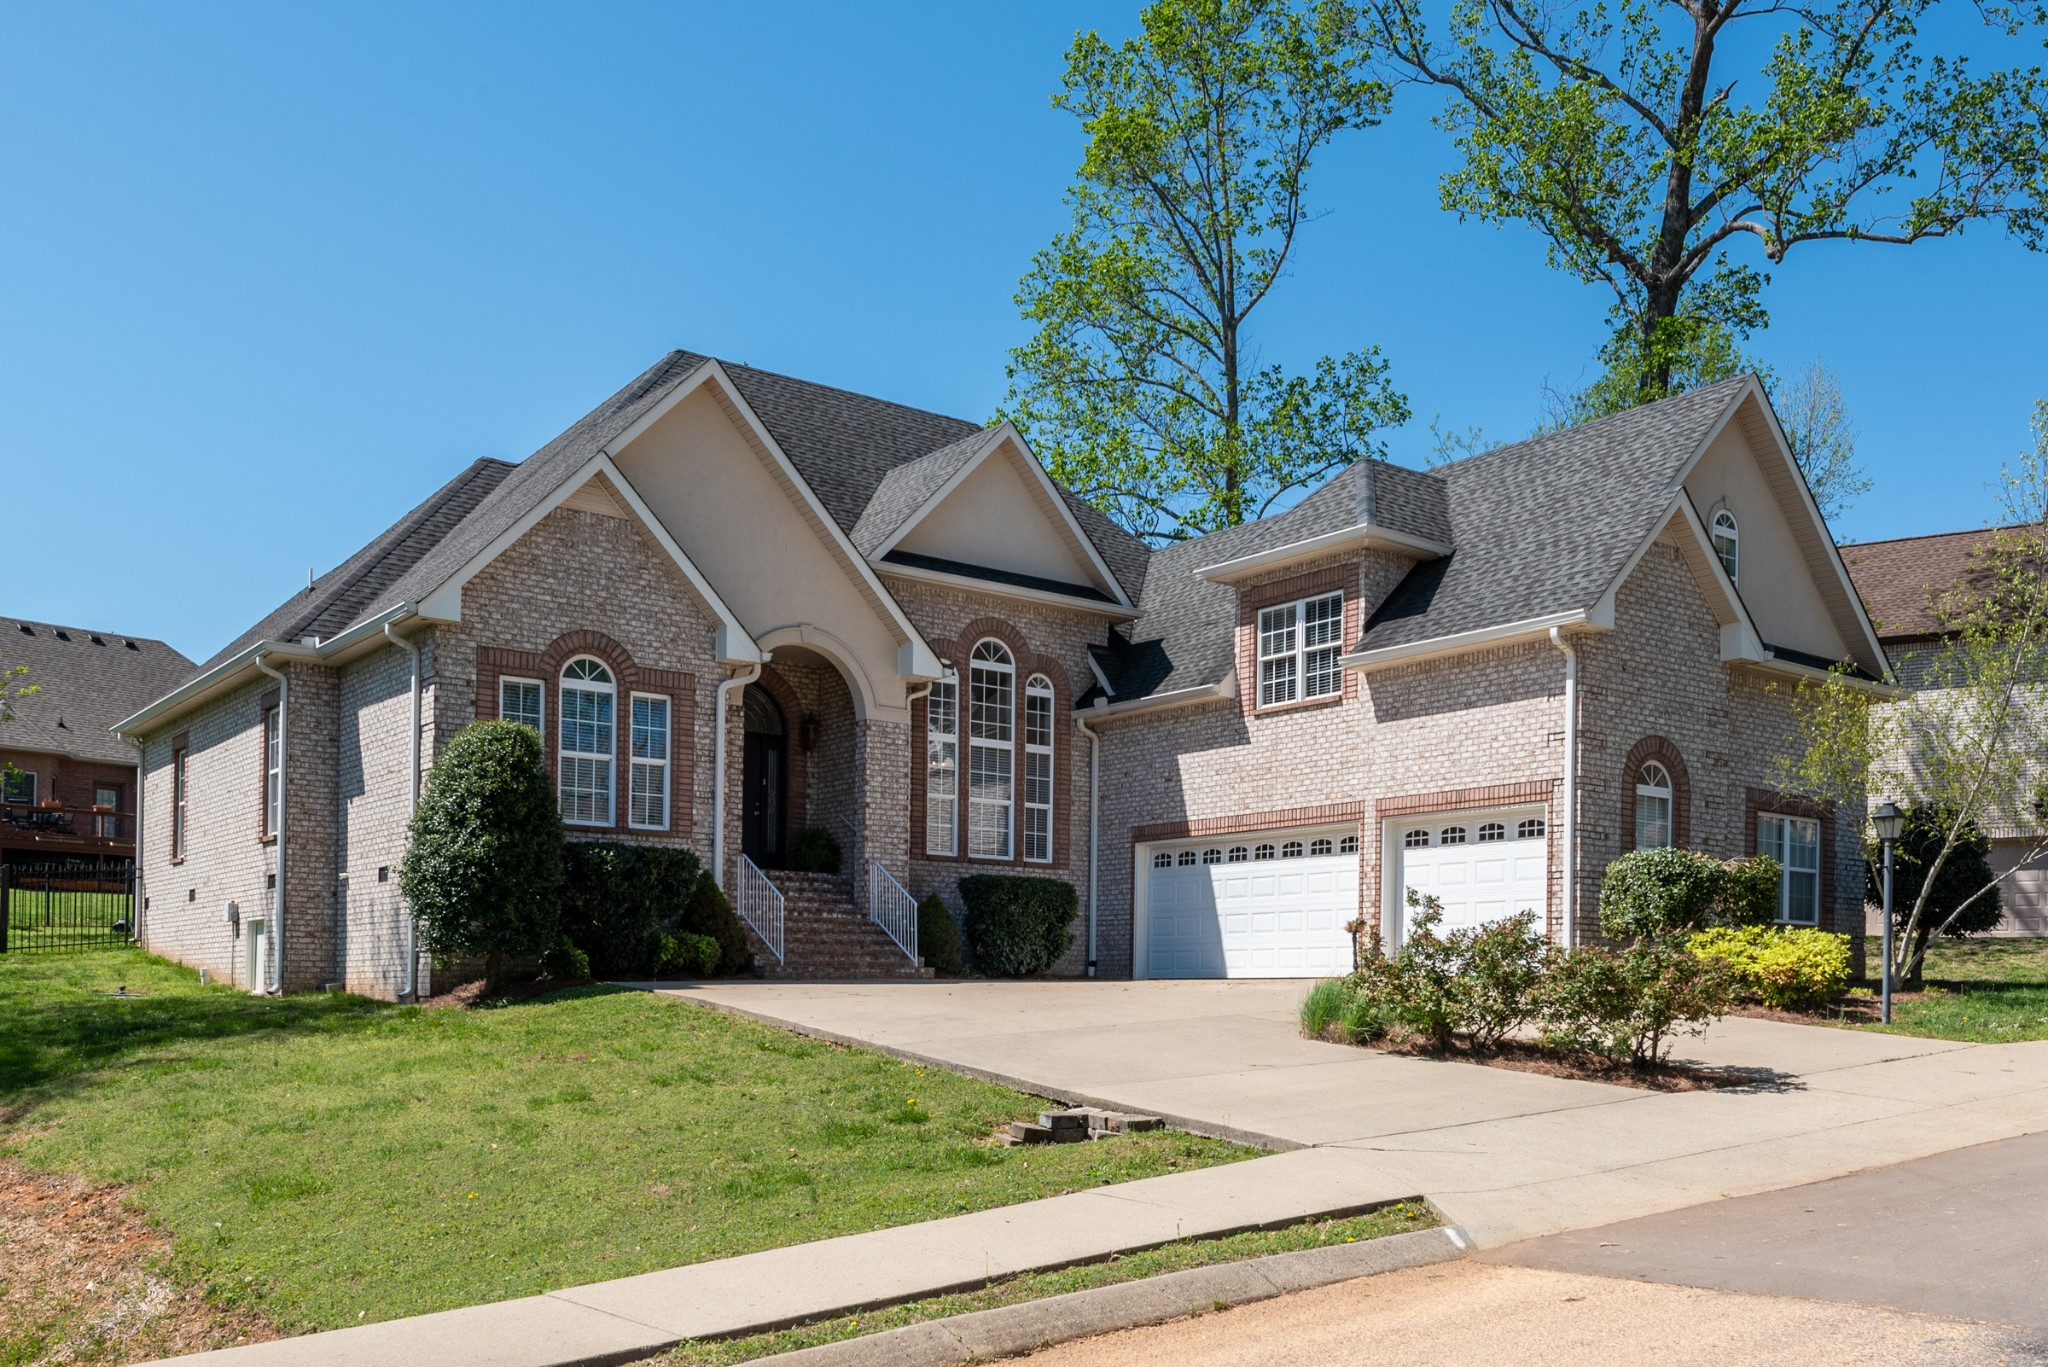 Beautiful All Brick 4 BR/3.5 BA Home In Sought After Subdivision!  423 Fieldstone Dr., White House, TN.  37188